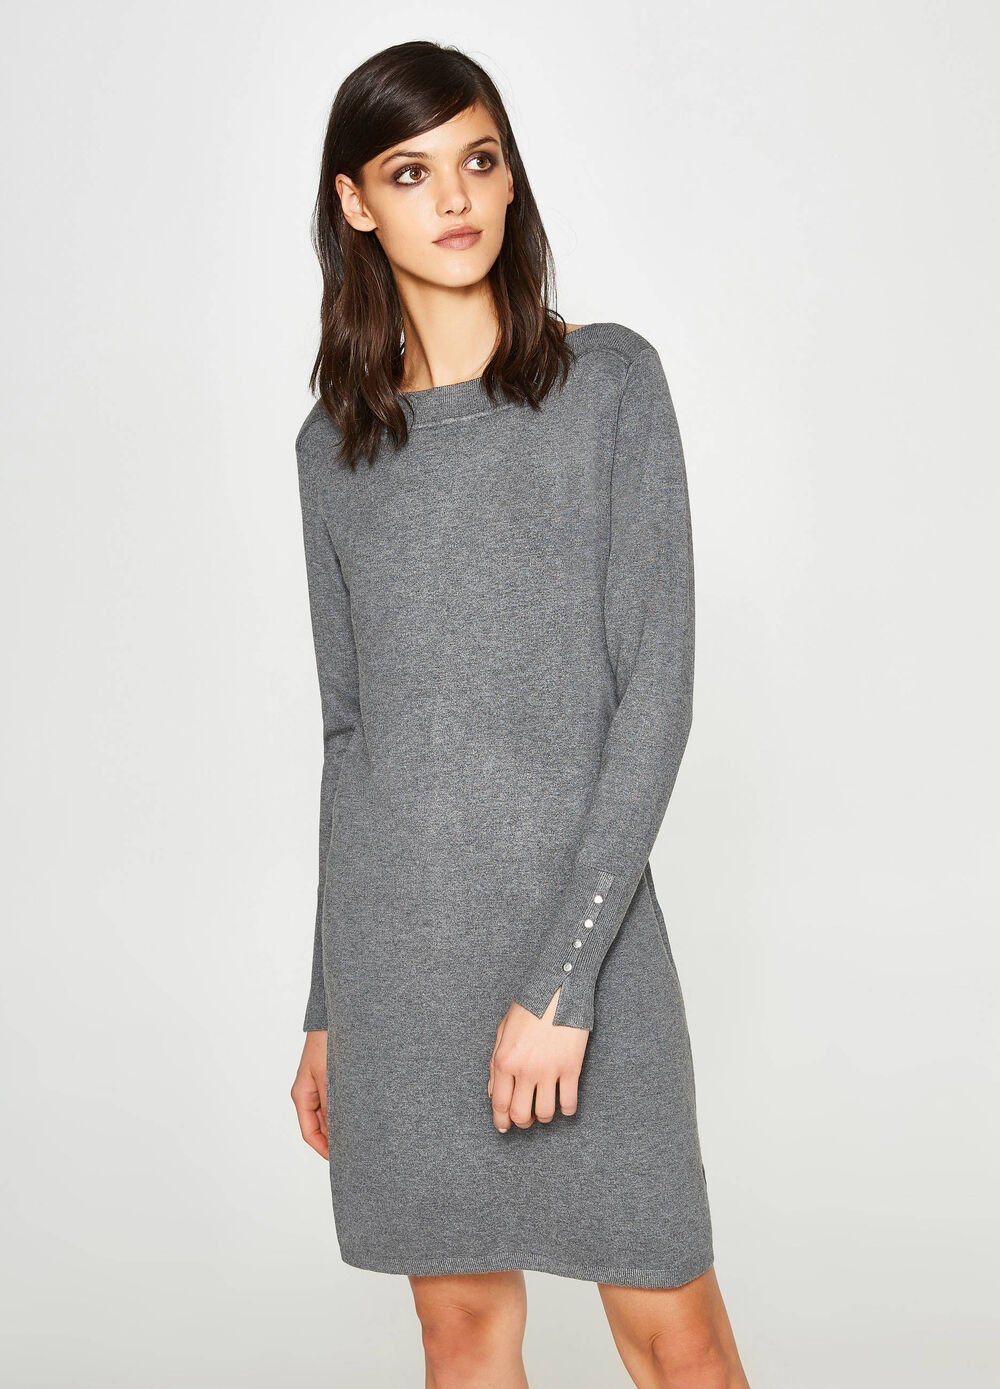 Stretch viscose knit dress